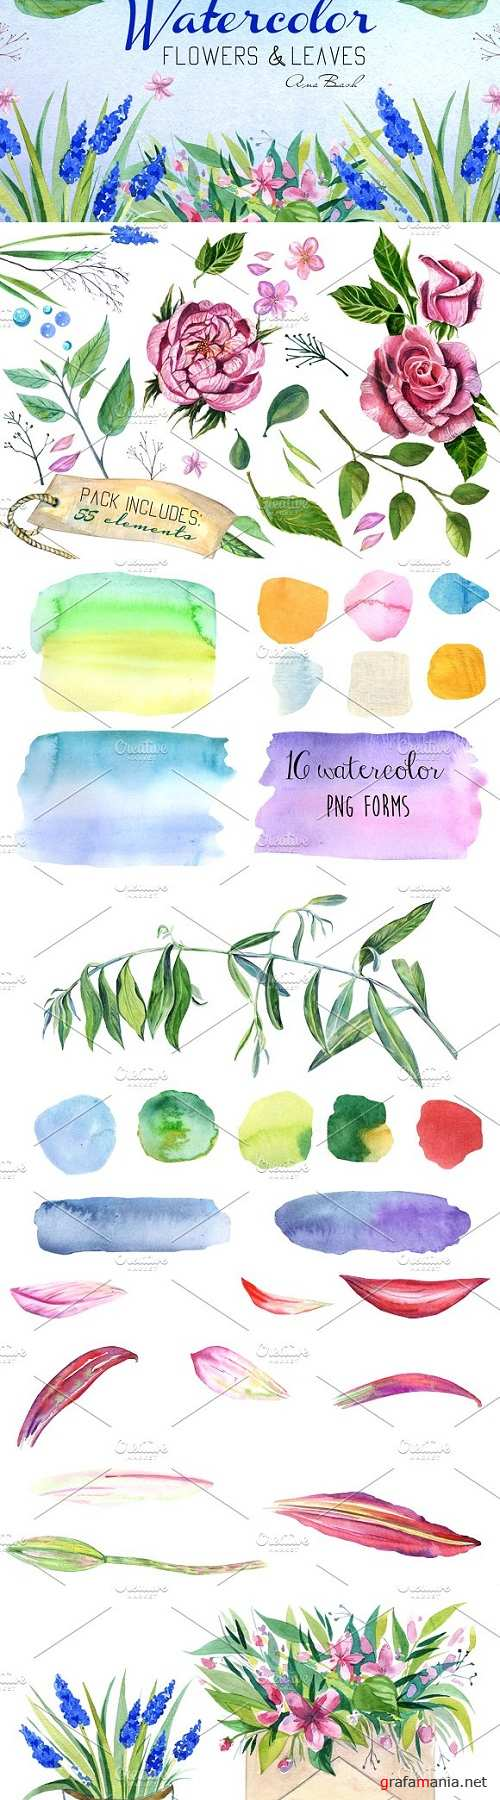 Watercolor hand painted florals kit 1491672